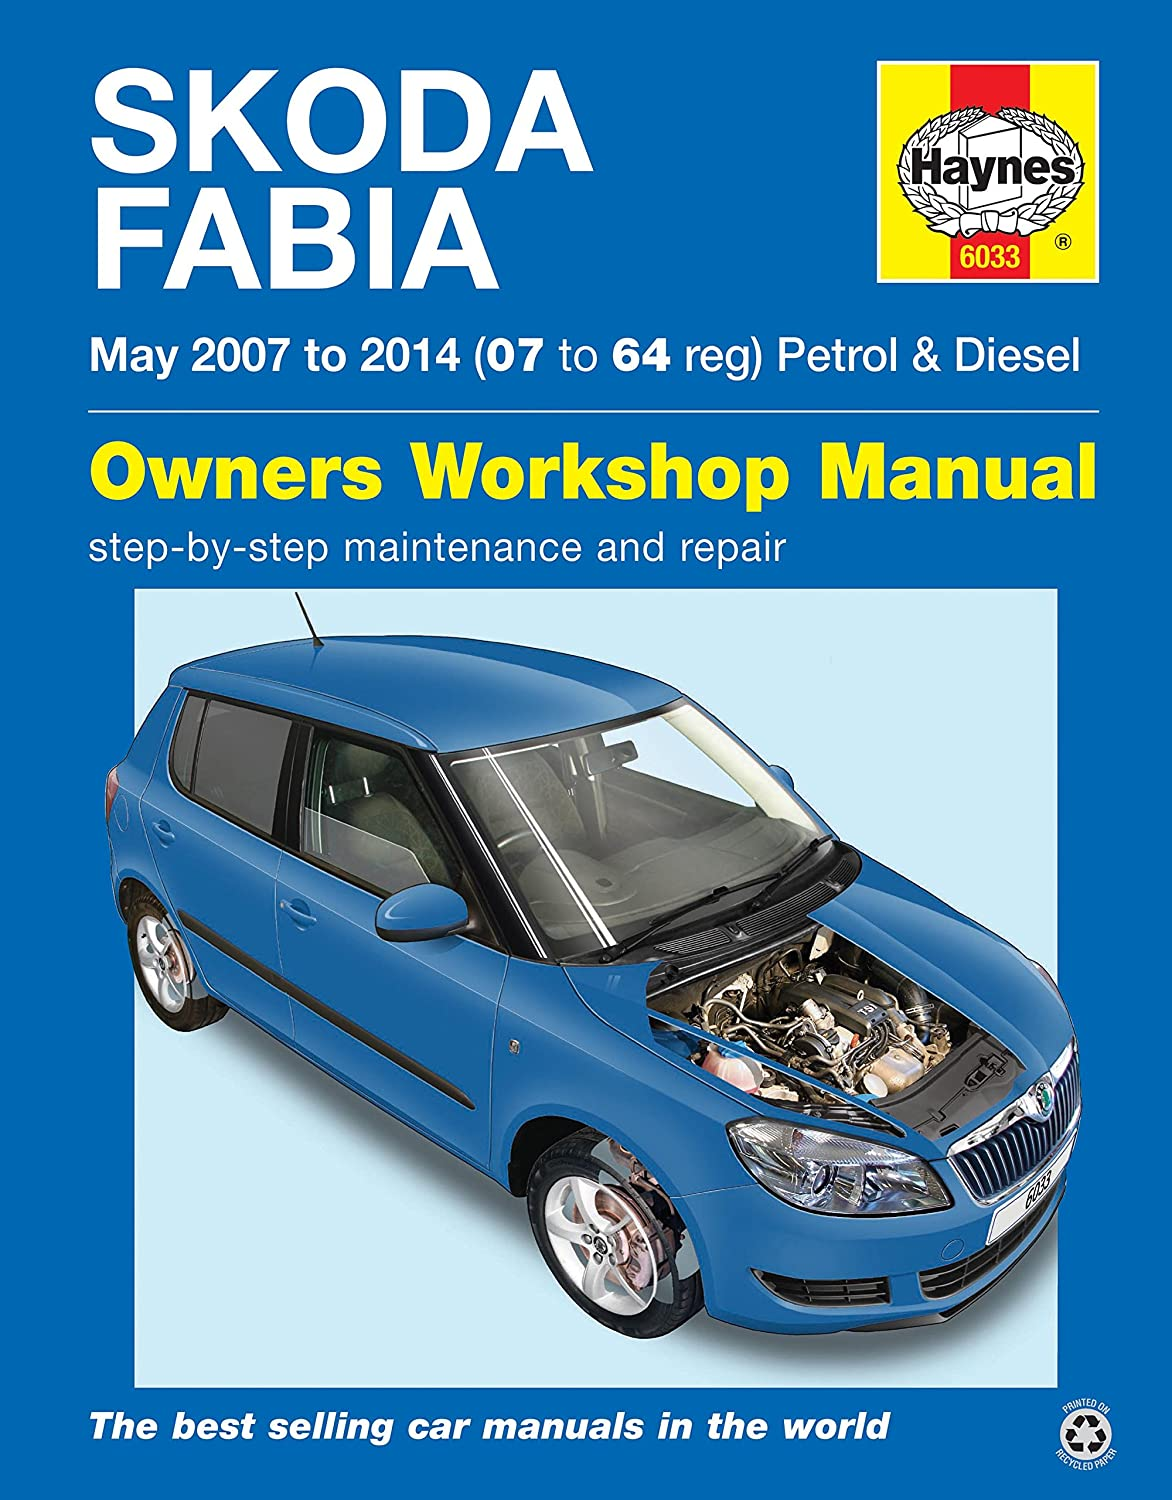 Skoda Fabia May 2007 to 2014 (07 to 64 reg) Petrol & Diesel: Amazon.co.uk:  Car & Motorbike